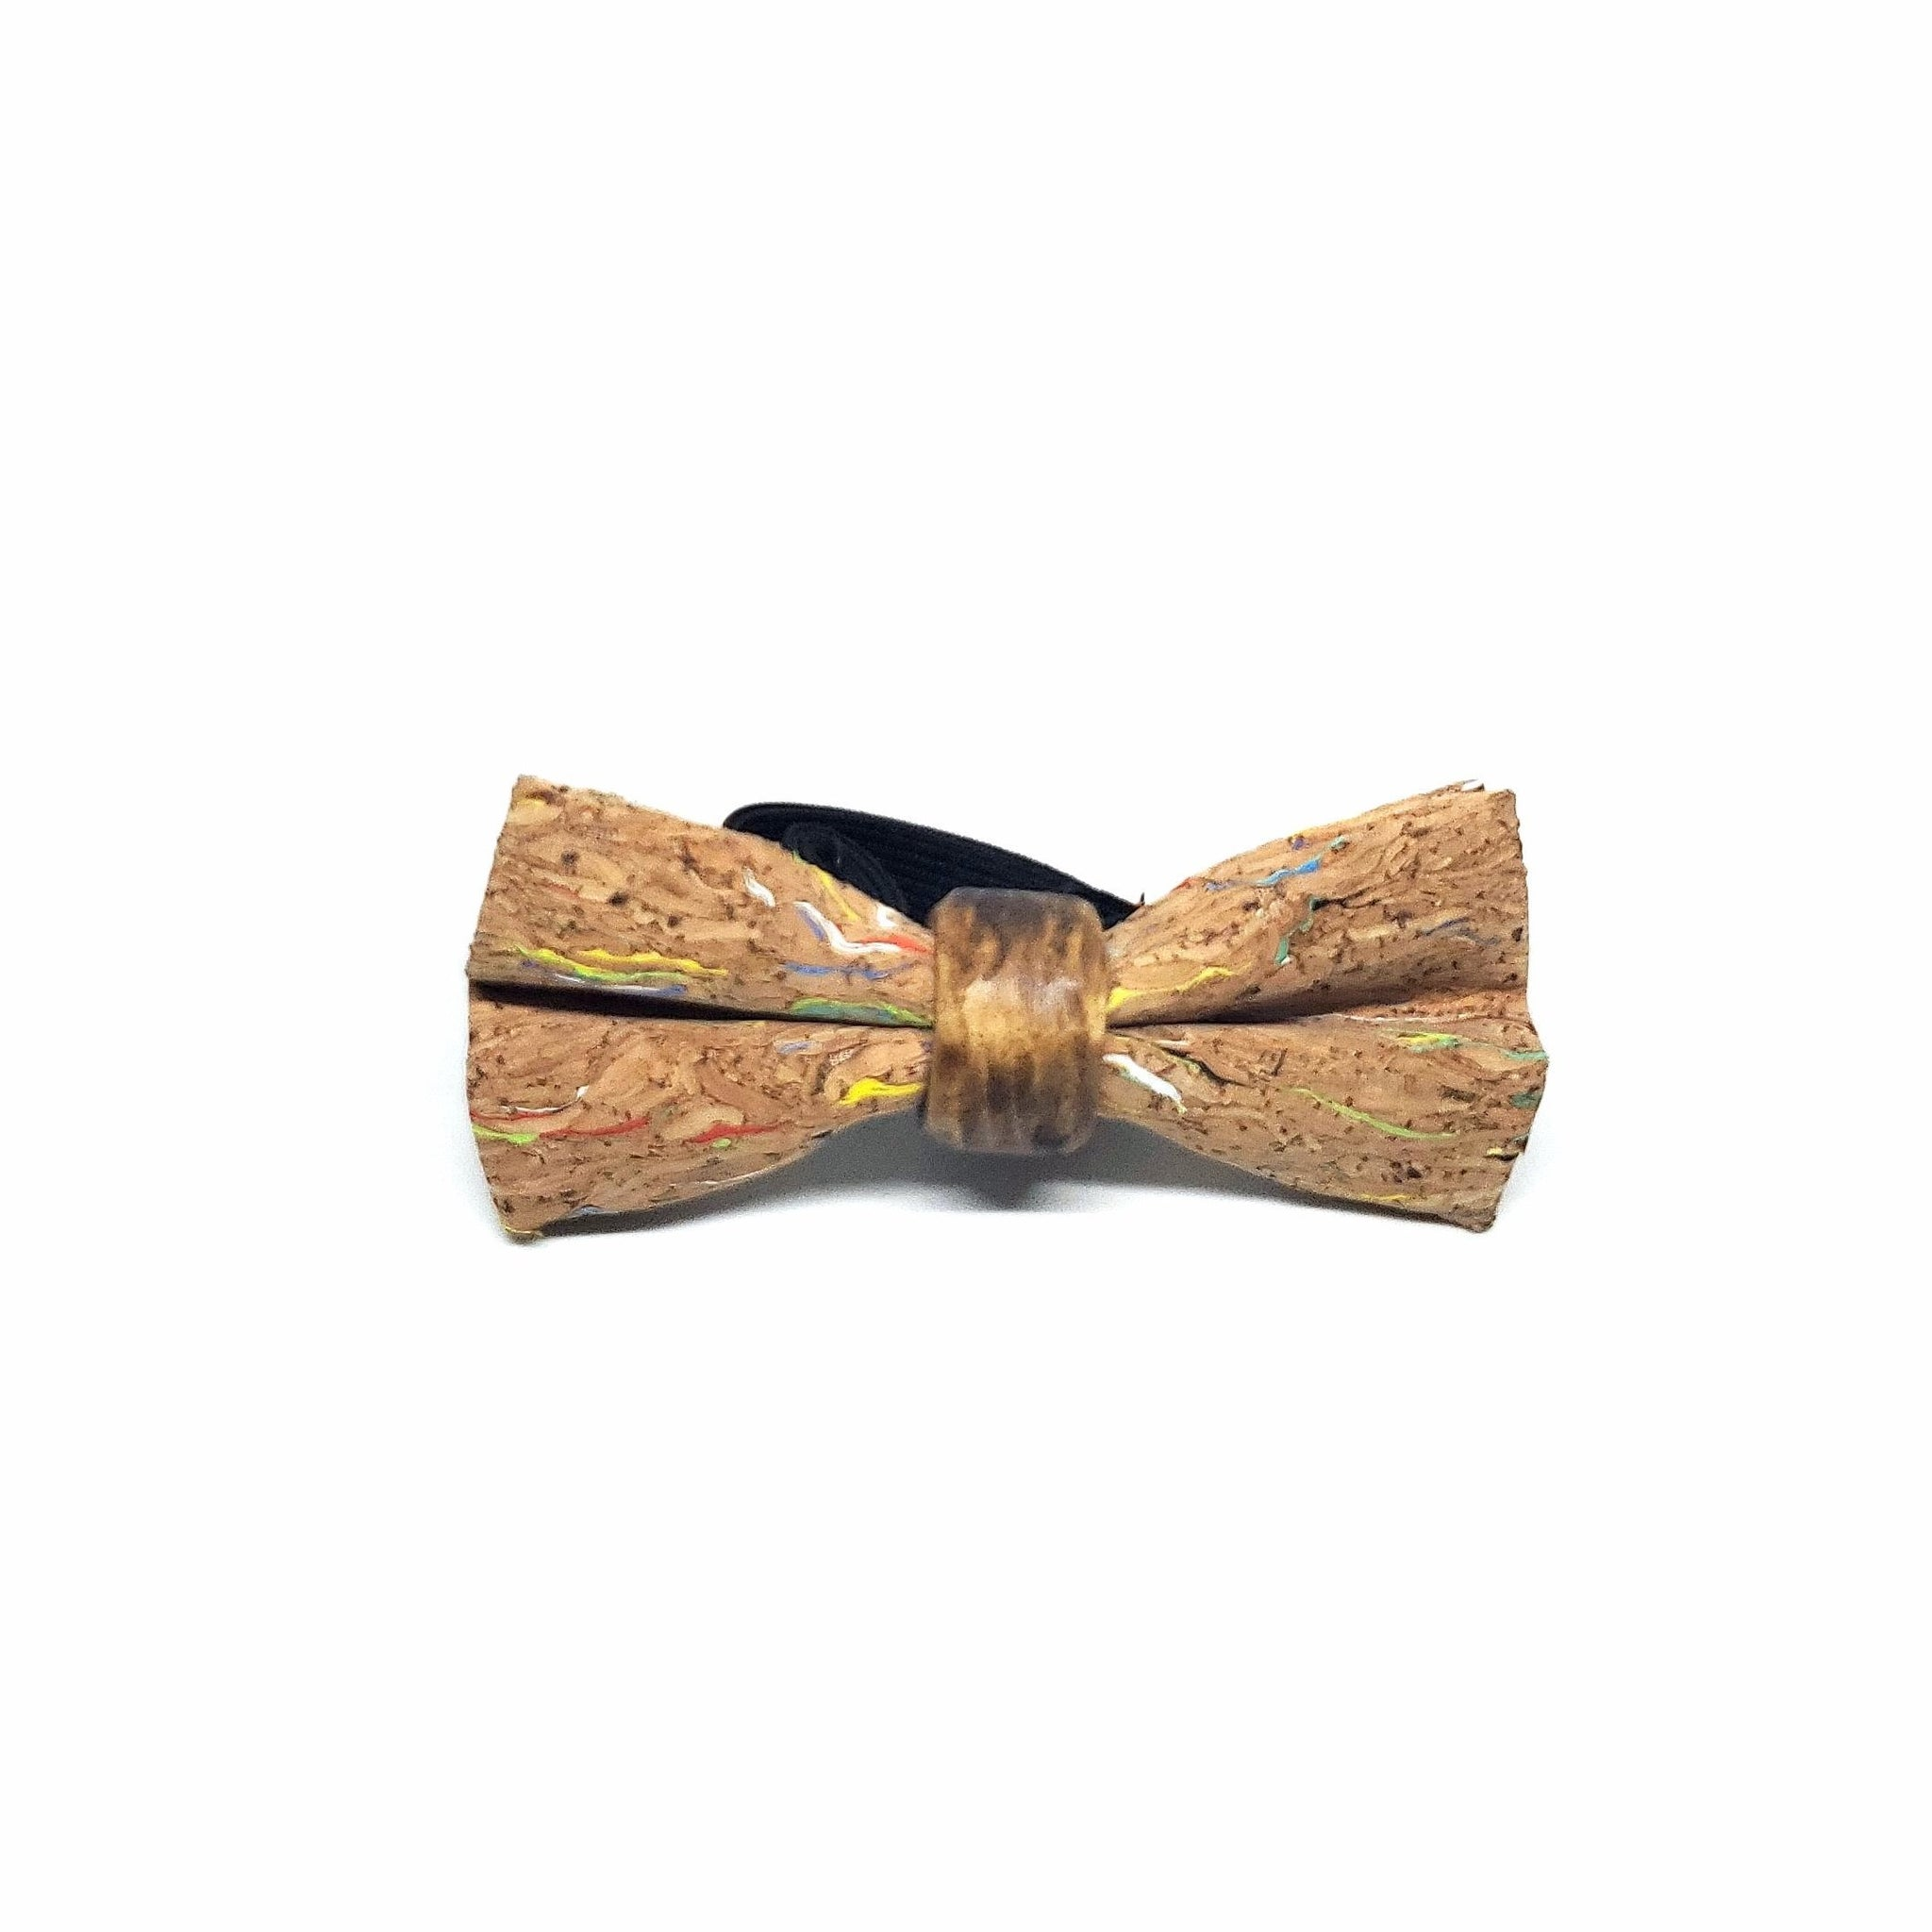 The Dan Cork Bow Tie